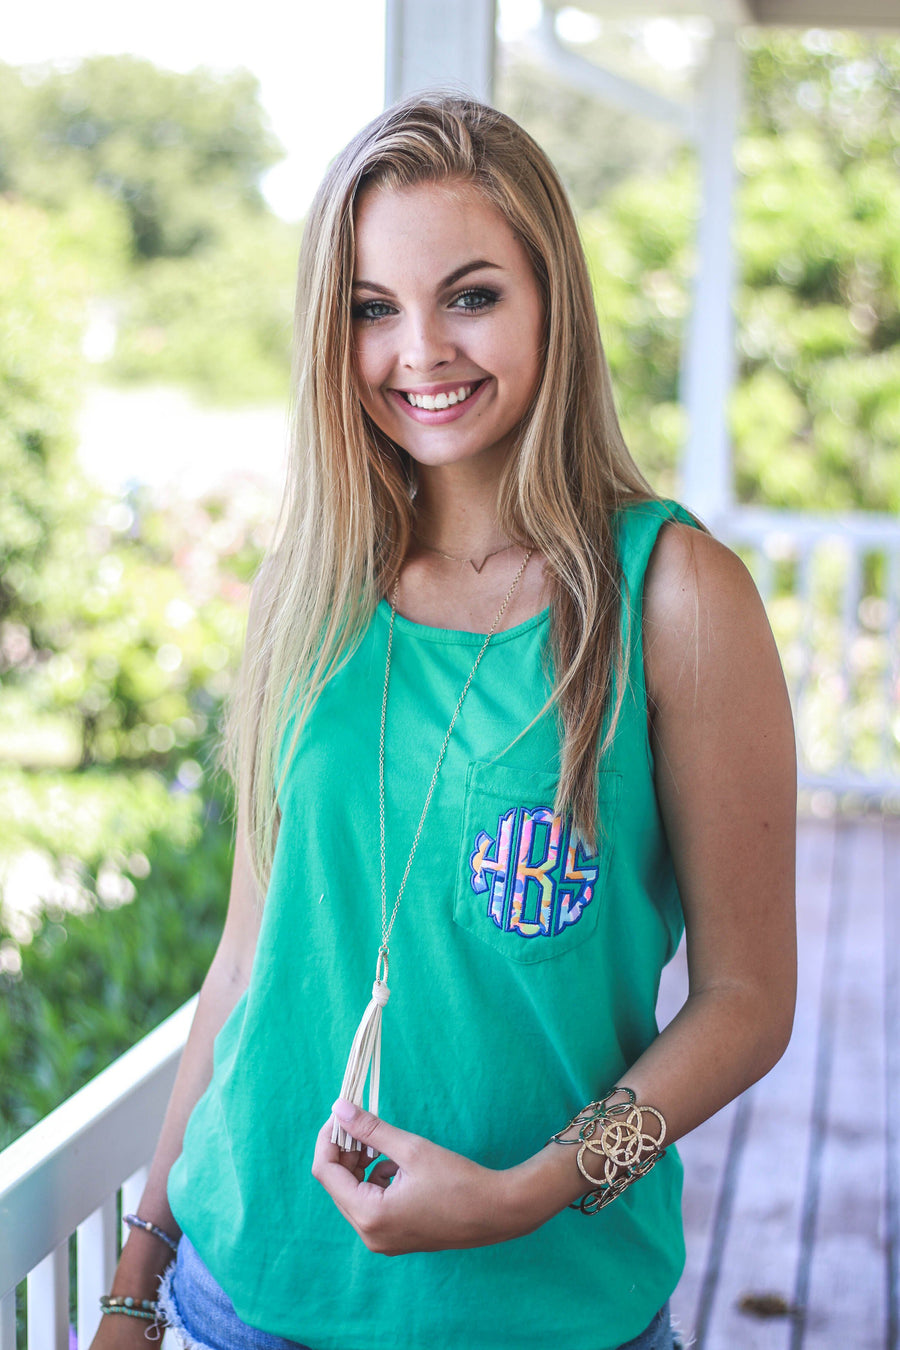 Lilly Scallop Monogrammed Comfort Colors Tank Top Pocket, ladies, Comfort Colors, - Sunny and Southern,